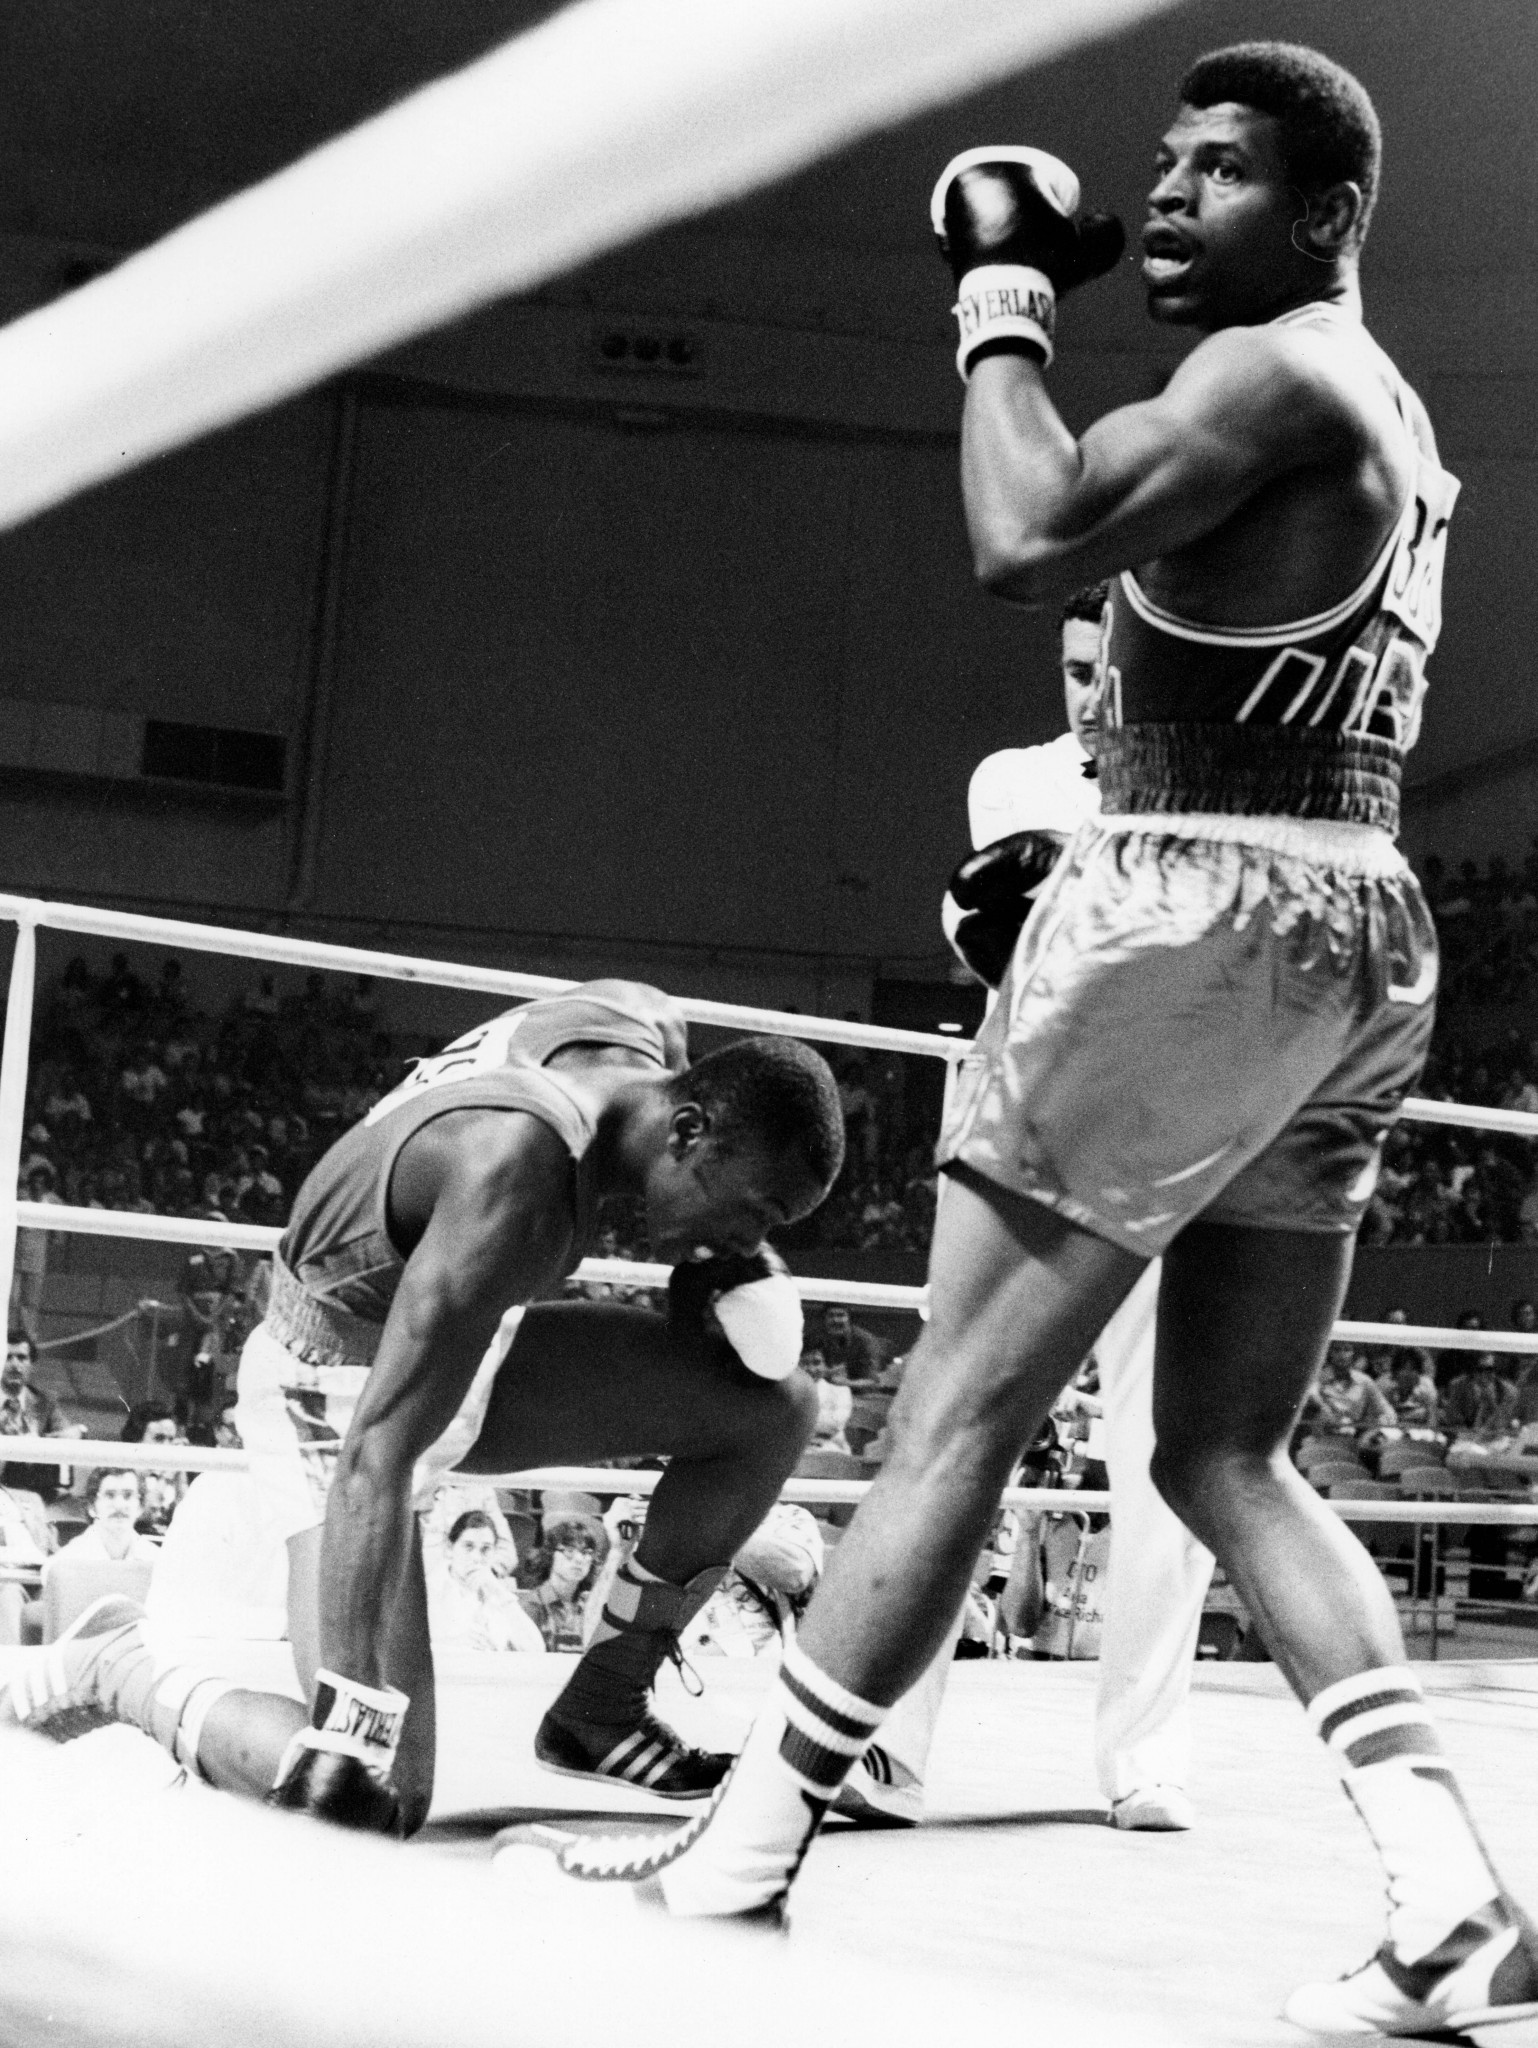 Olympic boxing champion Spinks who stunned Ali dies aged 67